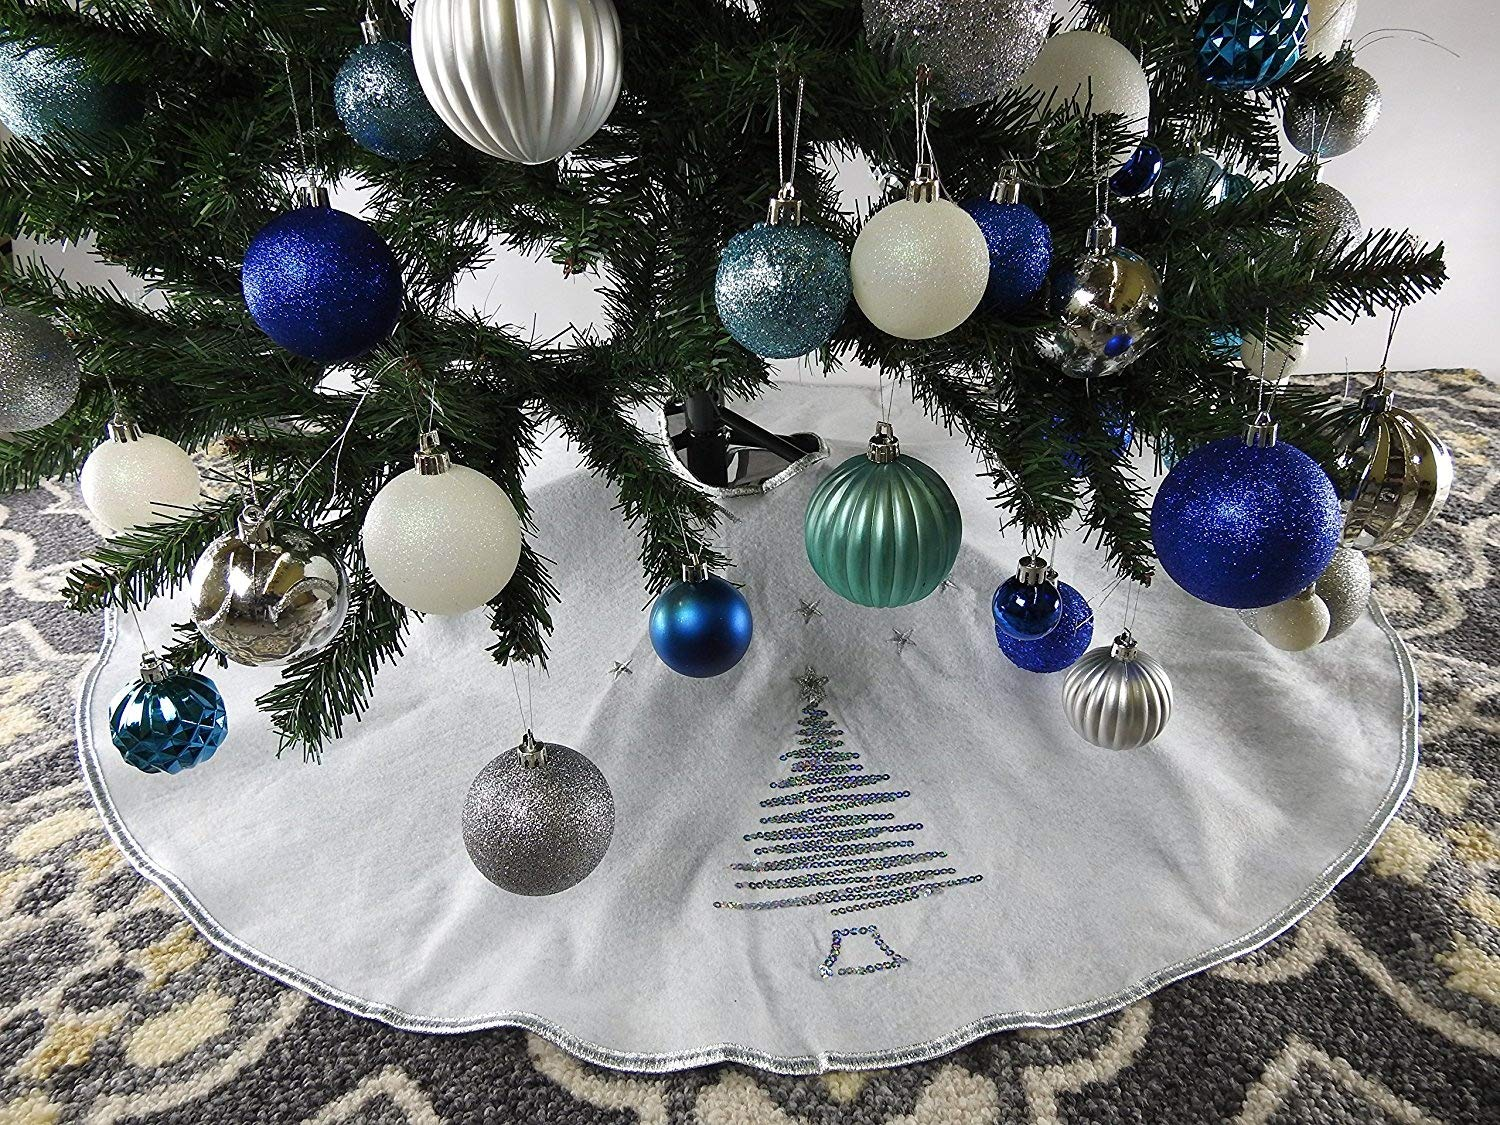 39.5'' White Christmas Tree Skirt with Silver Sequin Trim